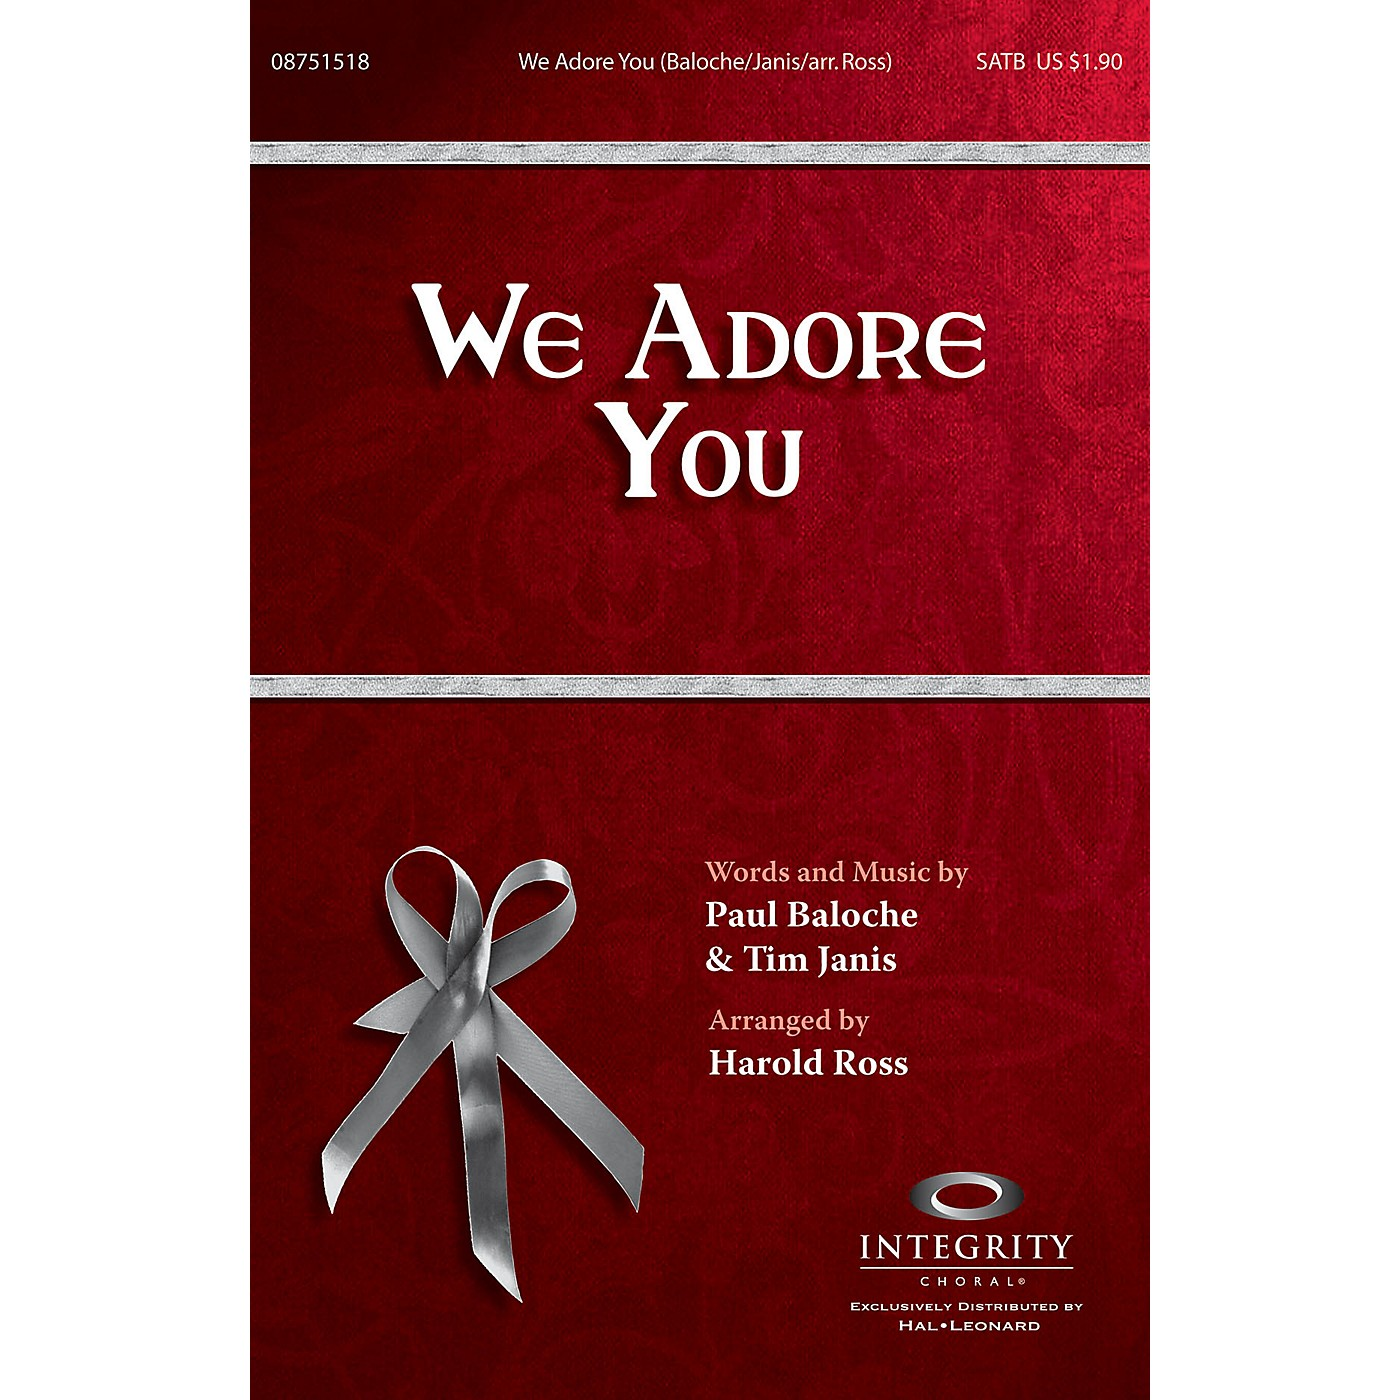 Integrity Choral We Adore You CD ACCOMP by Paul Baloche Arranged by Harold Ross thumbnail